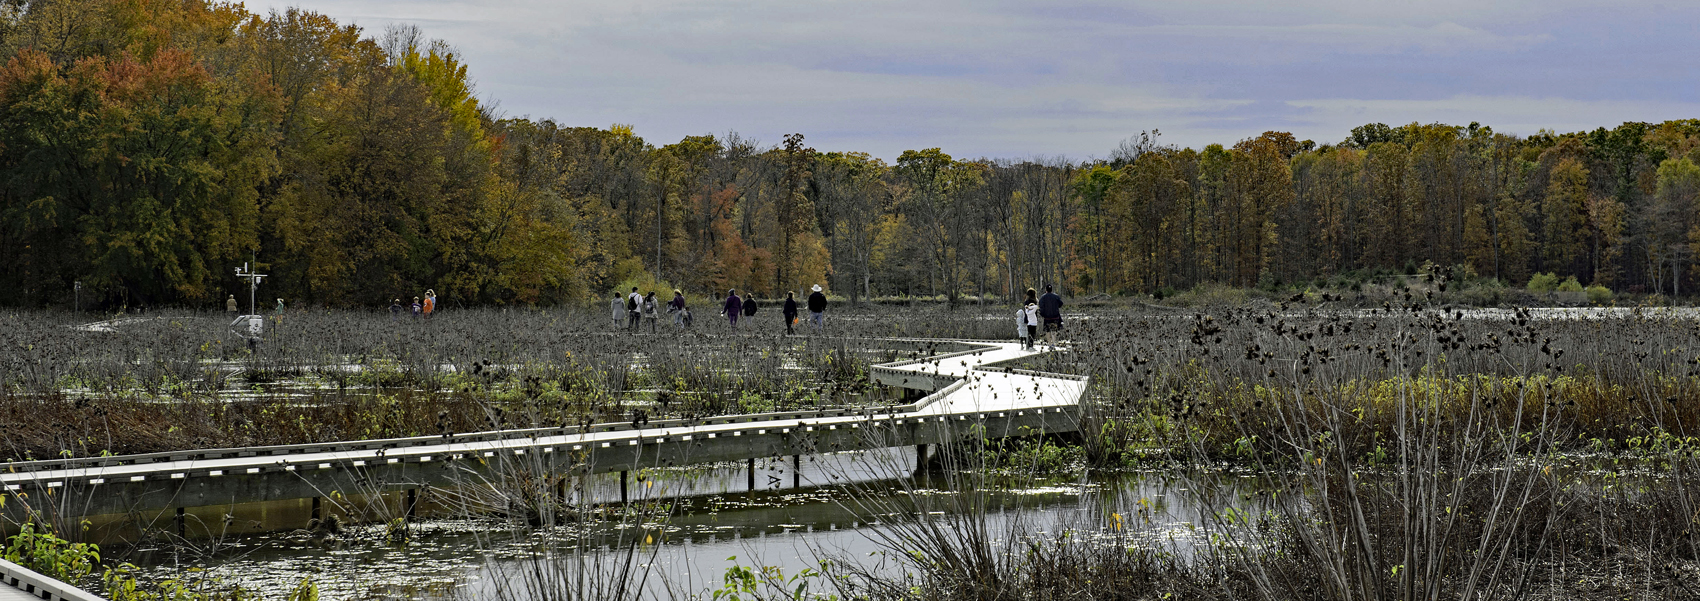 Several people on the Huntley Meadows boardwalk look out over the park's wetlands